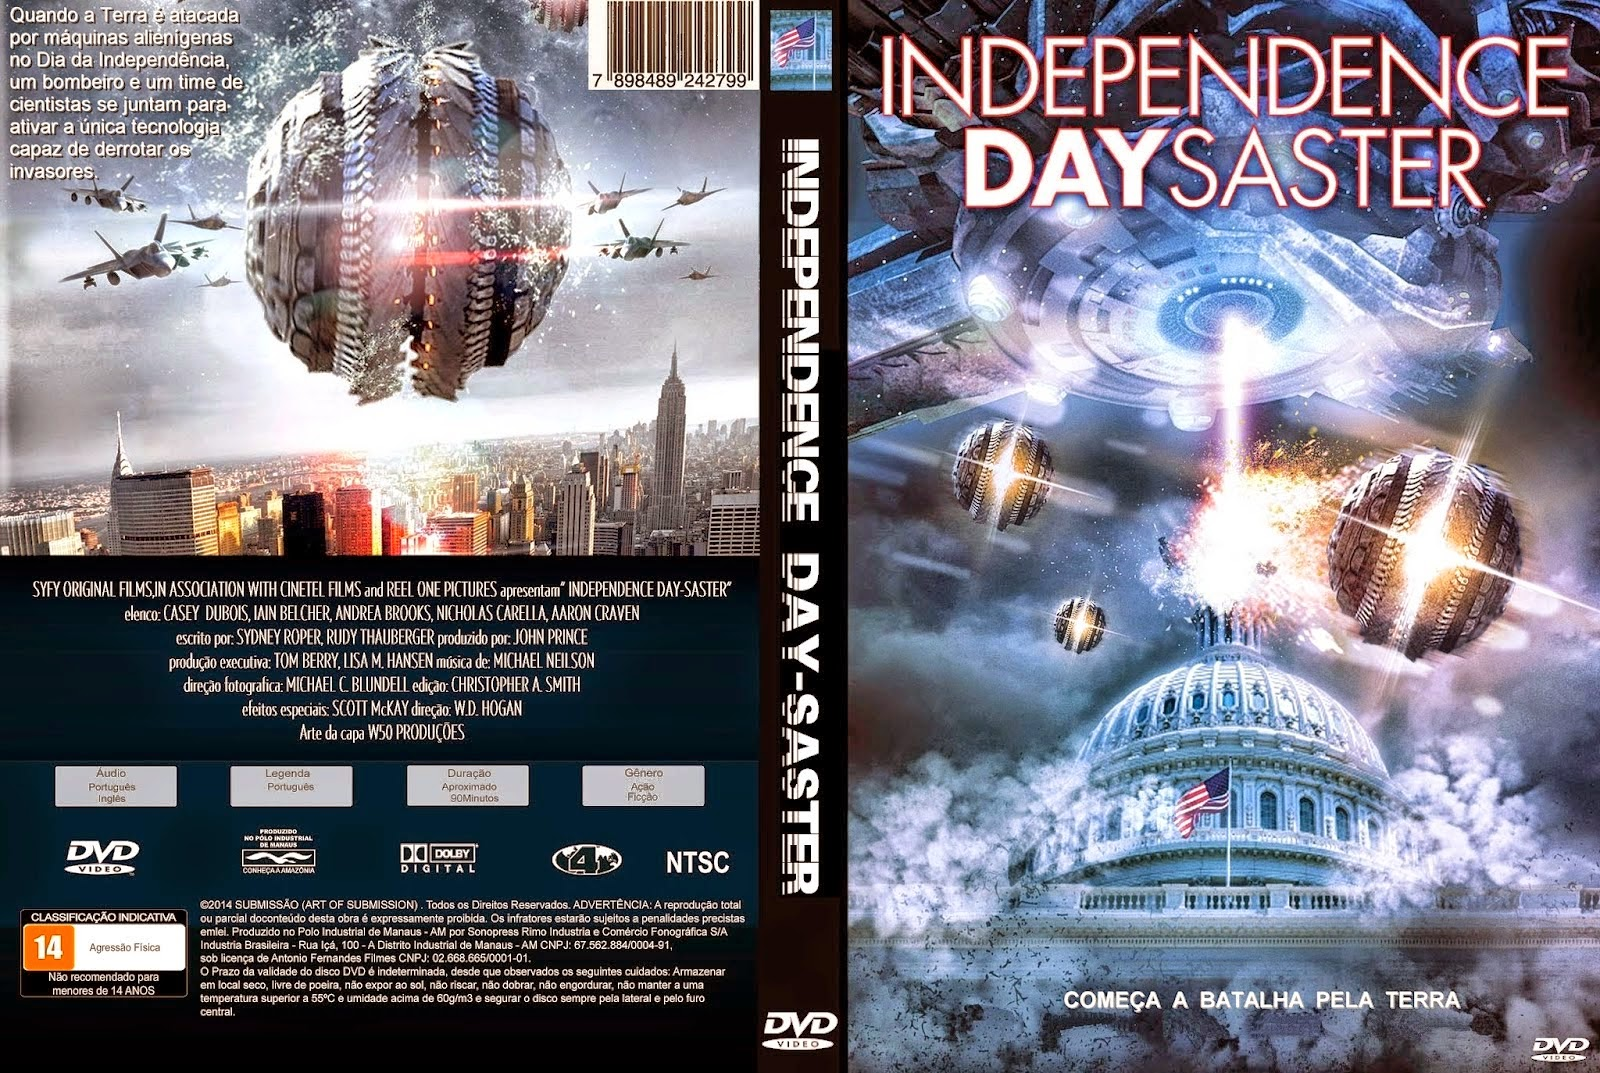 Independence Day Saster - DVD Capa